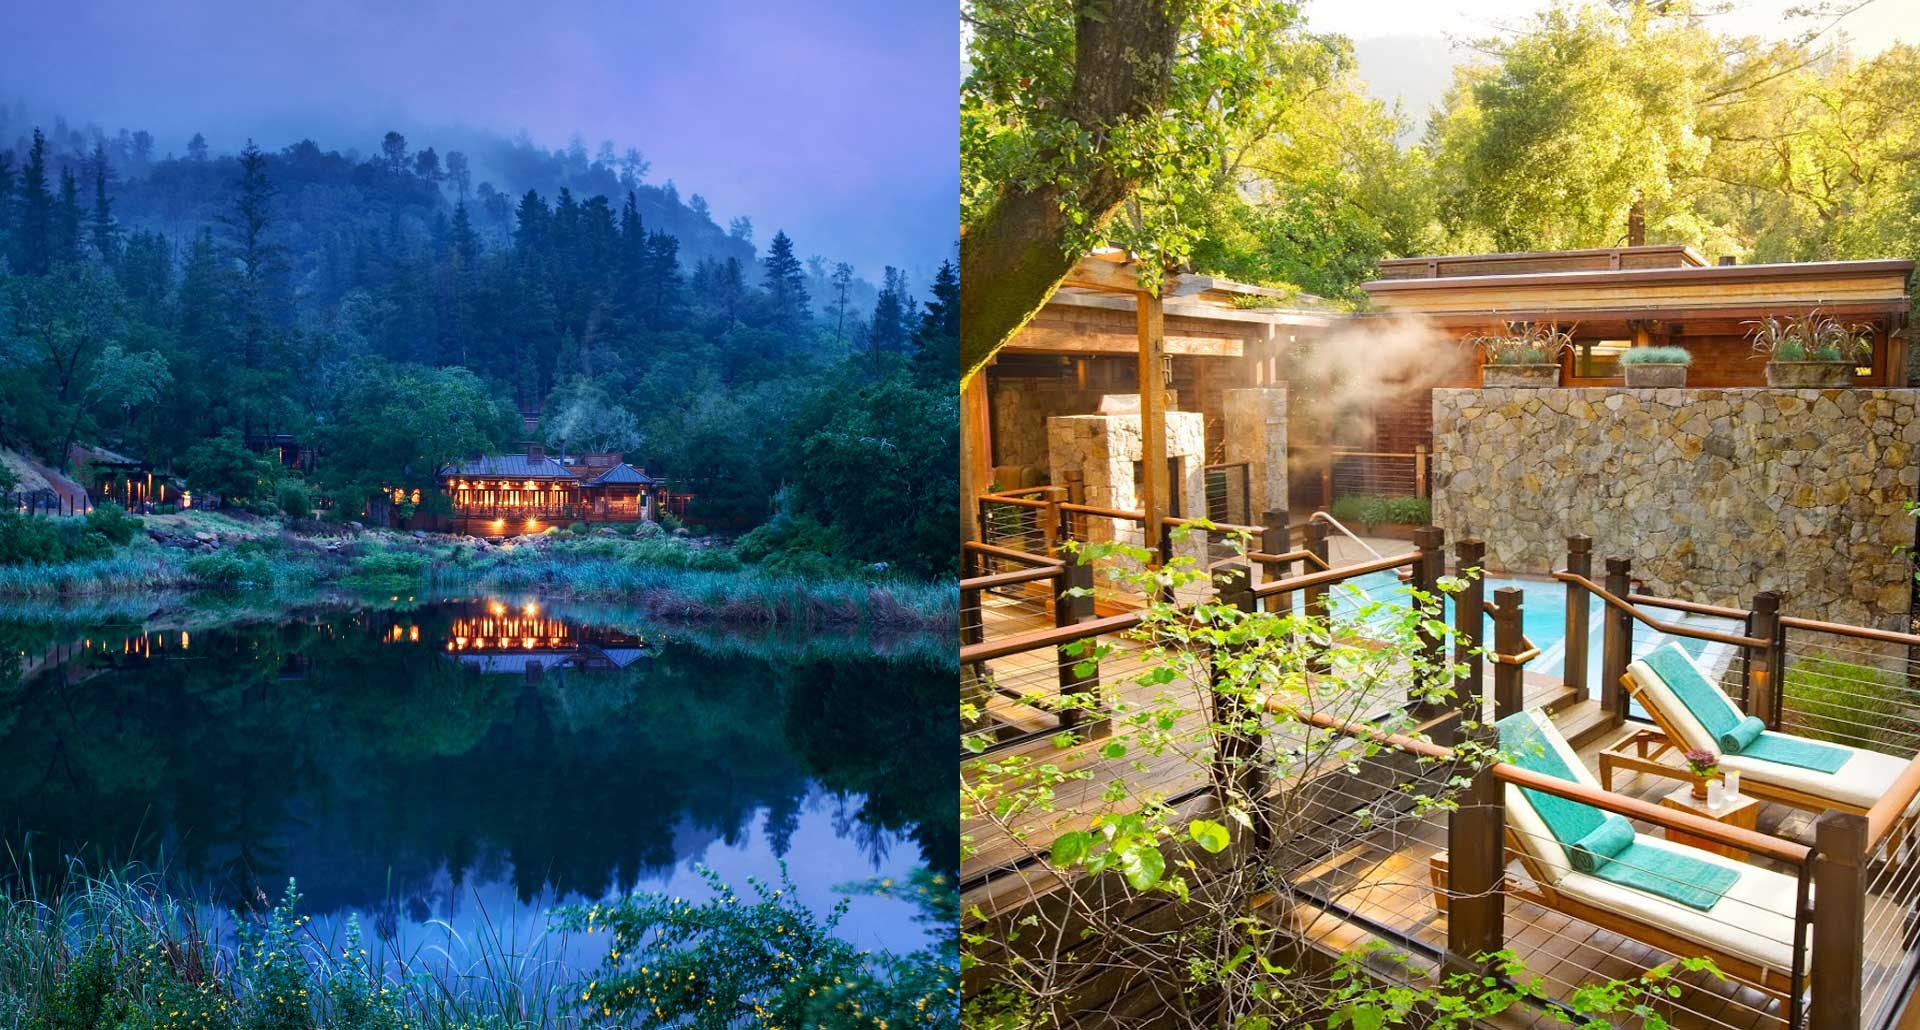 Calistoga Ranch - romantic boutique hotel in Sonoma Valley, California